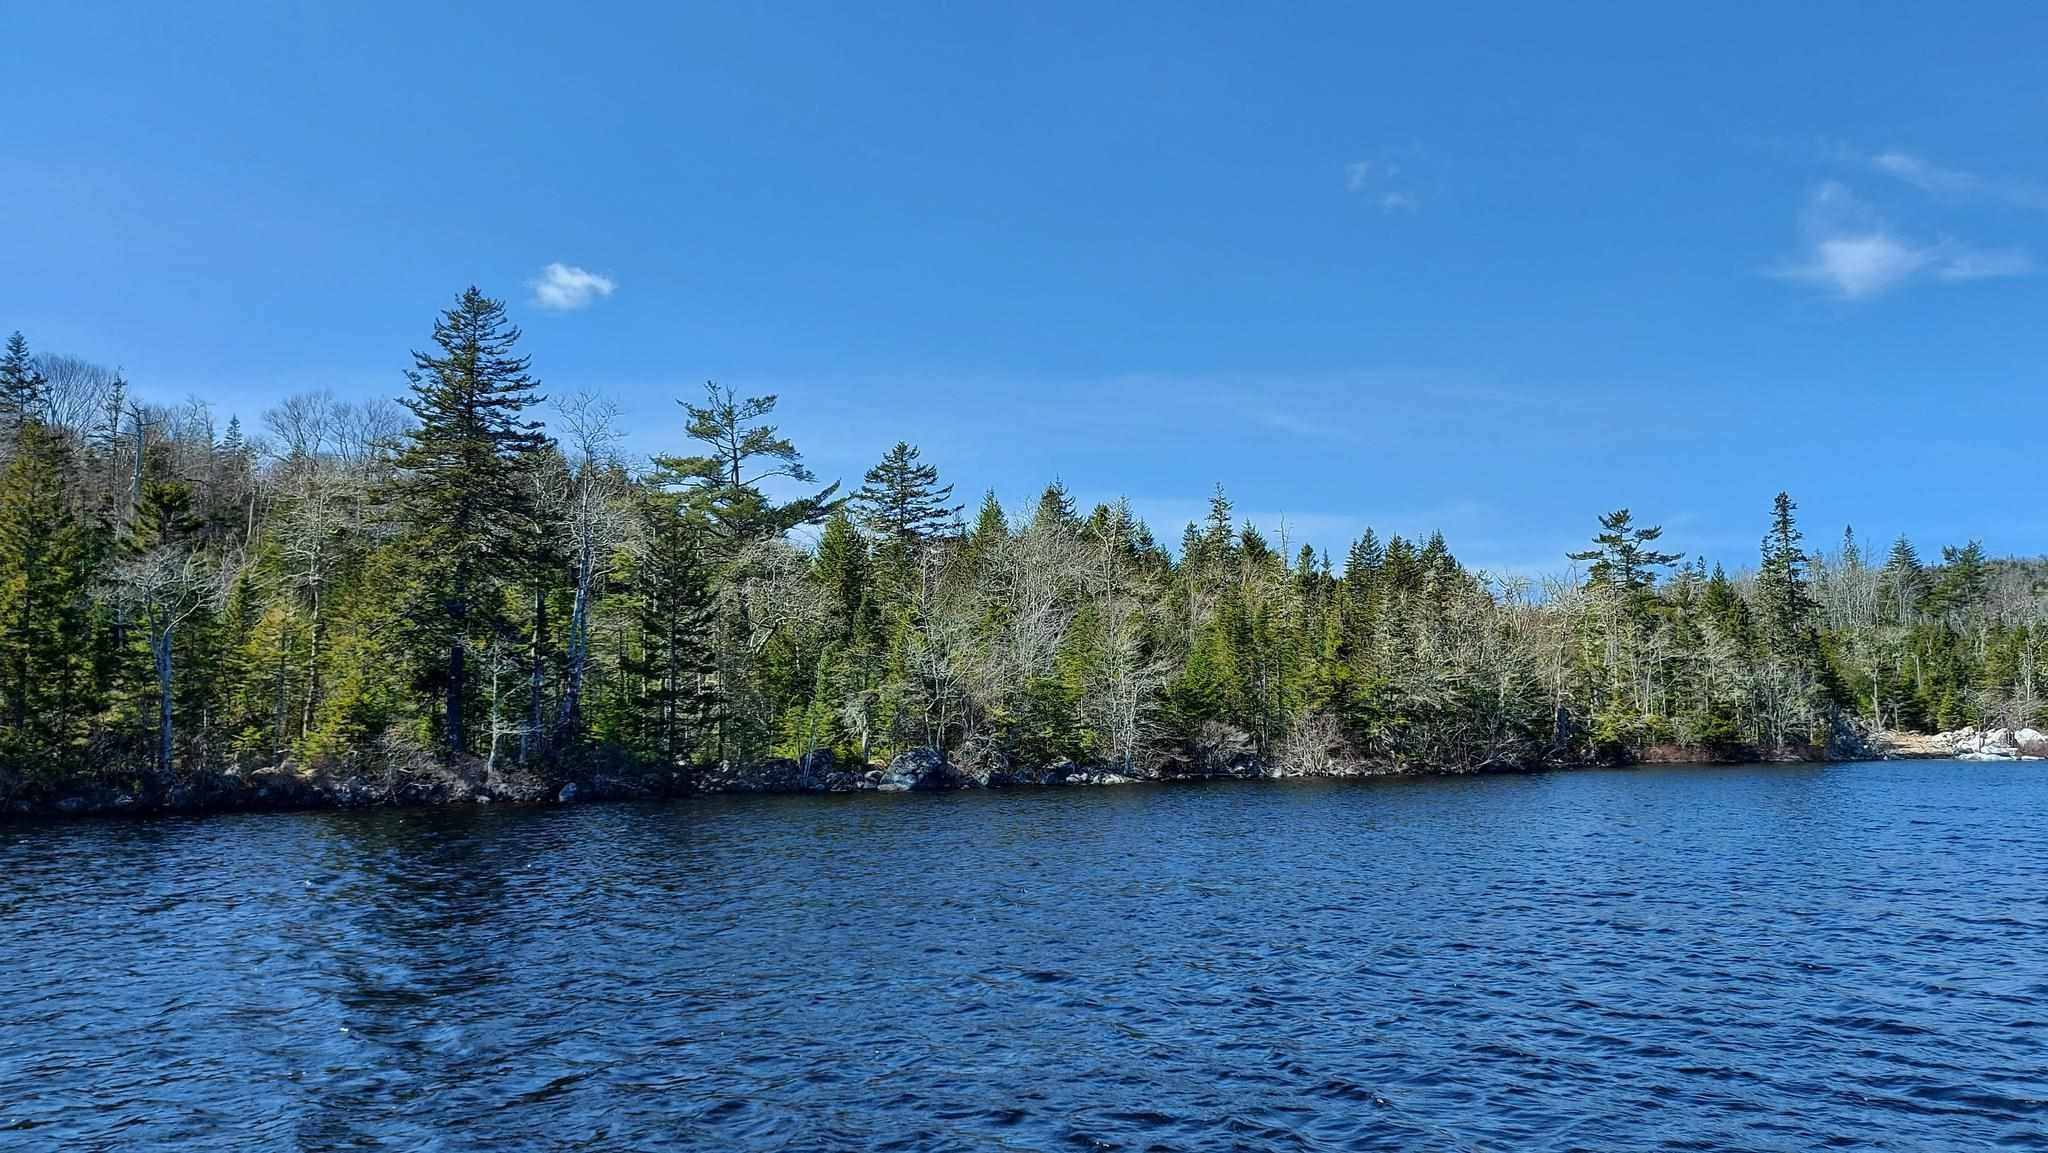 Main Photo: Lot 4 1202 Lake Charlotte Way in Upper Lakeville: 35-Halifax County East Vacant Land for sale (Halifax-Dartmouth)  : MLS®# 202113702